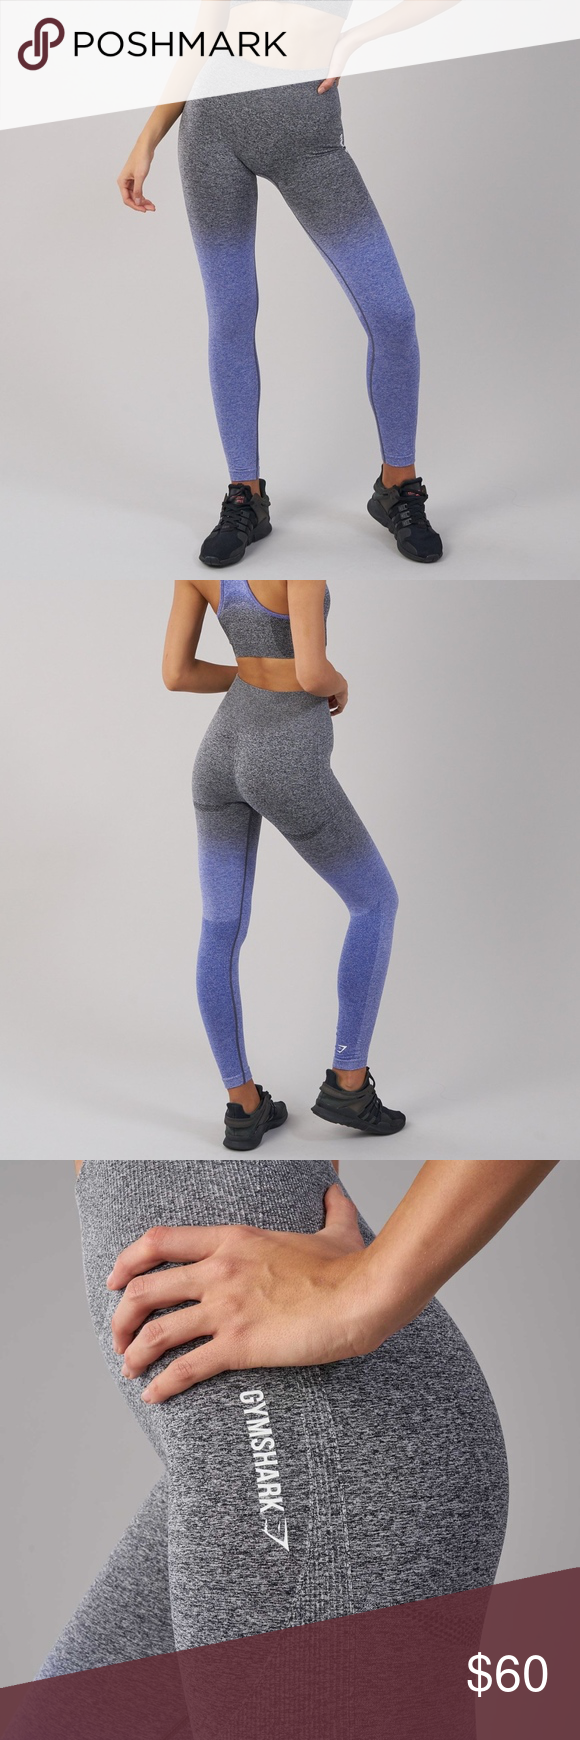 1e0c2085b645a3 Size S. Color is Indigo & Black. High waisted fit and glute enhancing  design offer second-to-none support, whilst DRY moisture management  technology ensures ...